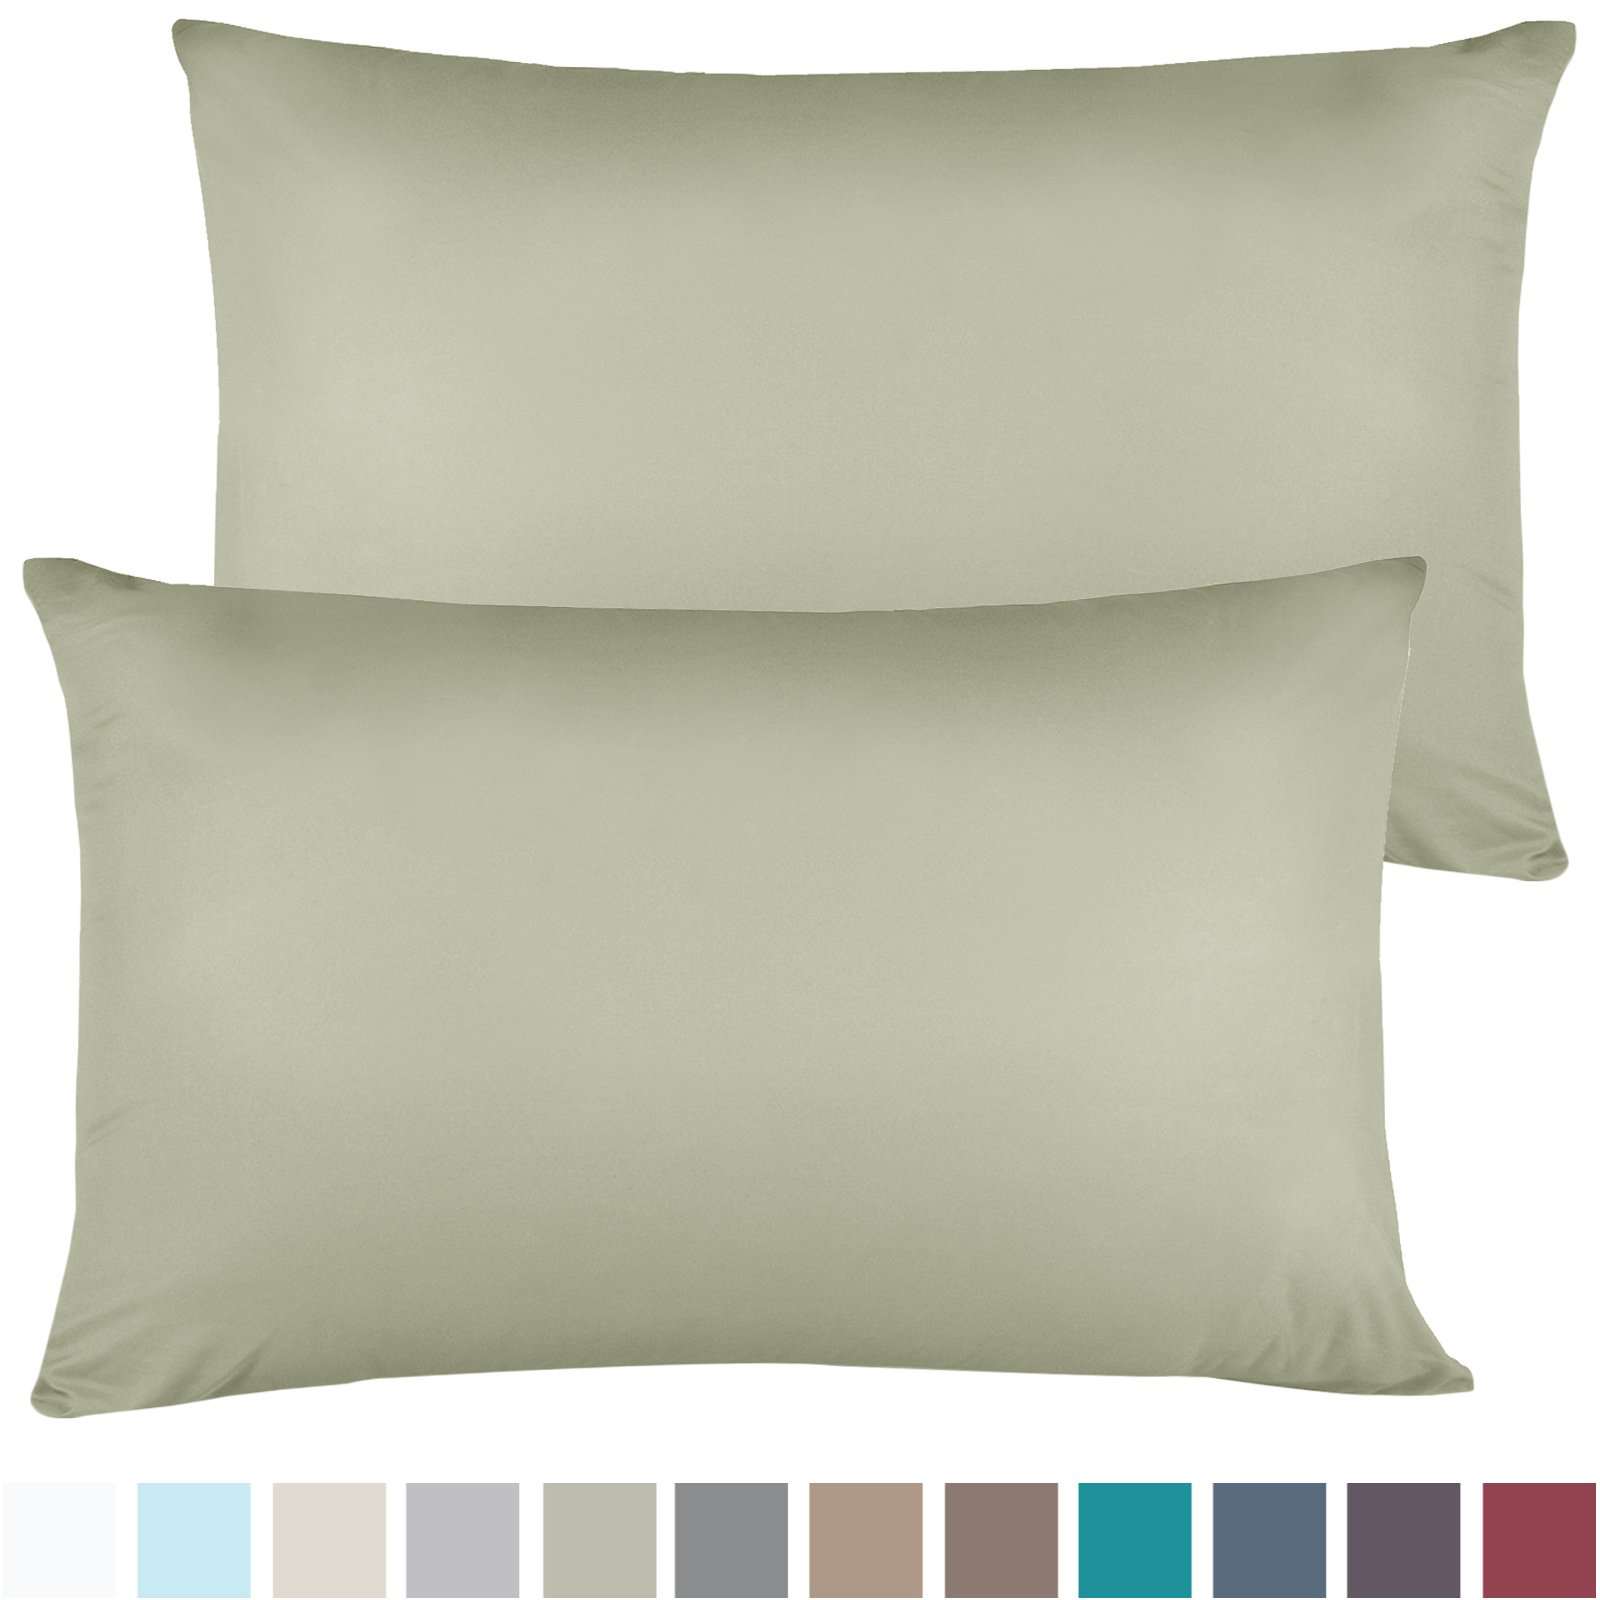 Empyrean Bedding Set of 2 Premium Standard-Size Pillowcases Microfiber Linen, Hypoallergenic & Breathable Design, Soft & Comfortable Hotel Luxury - Sage Olive Green